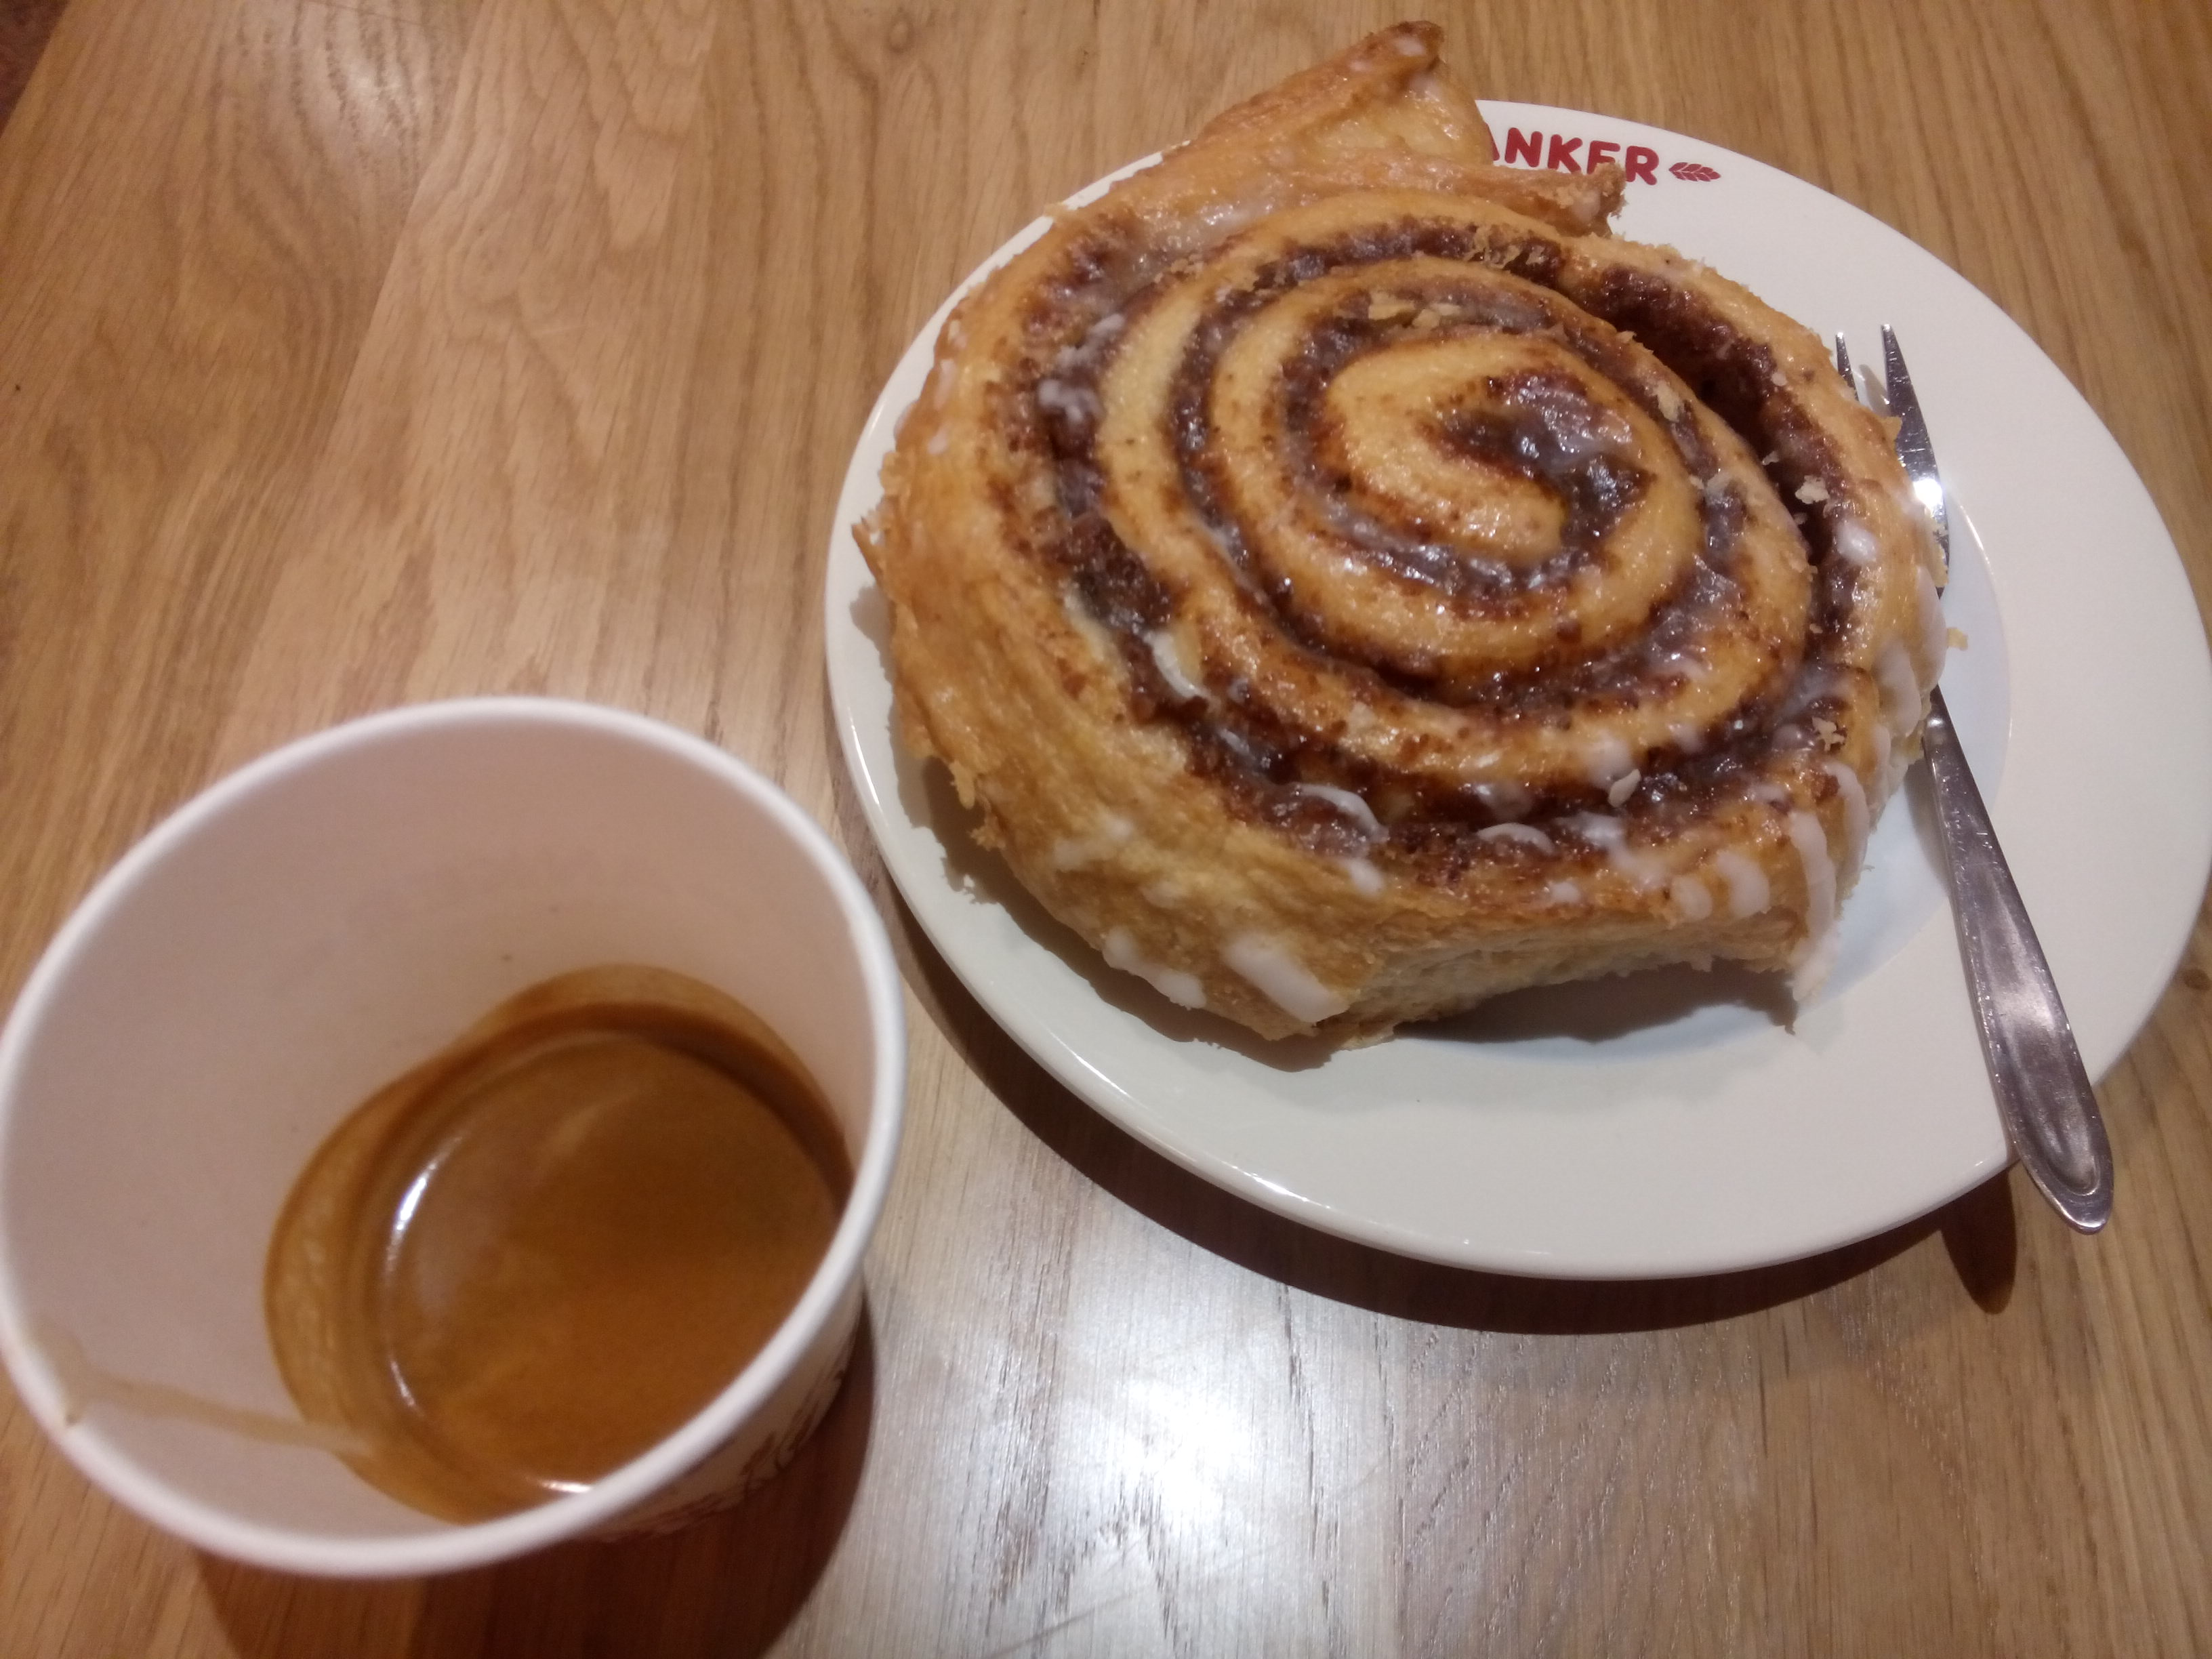 A wooden table, espresso in a takeaway cup and a spiral pastry on a plate